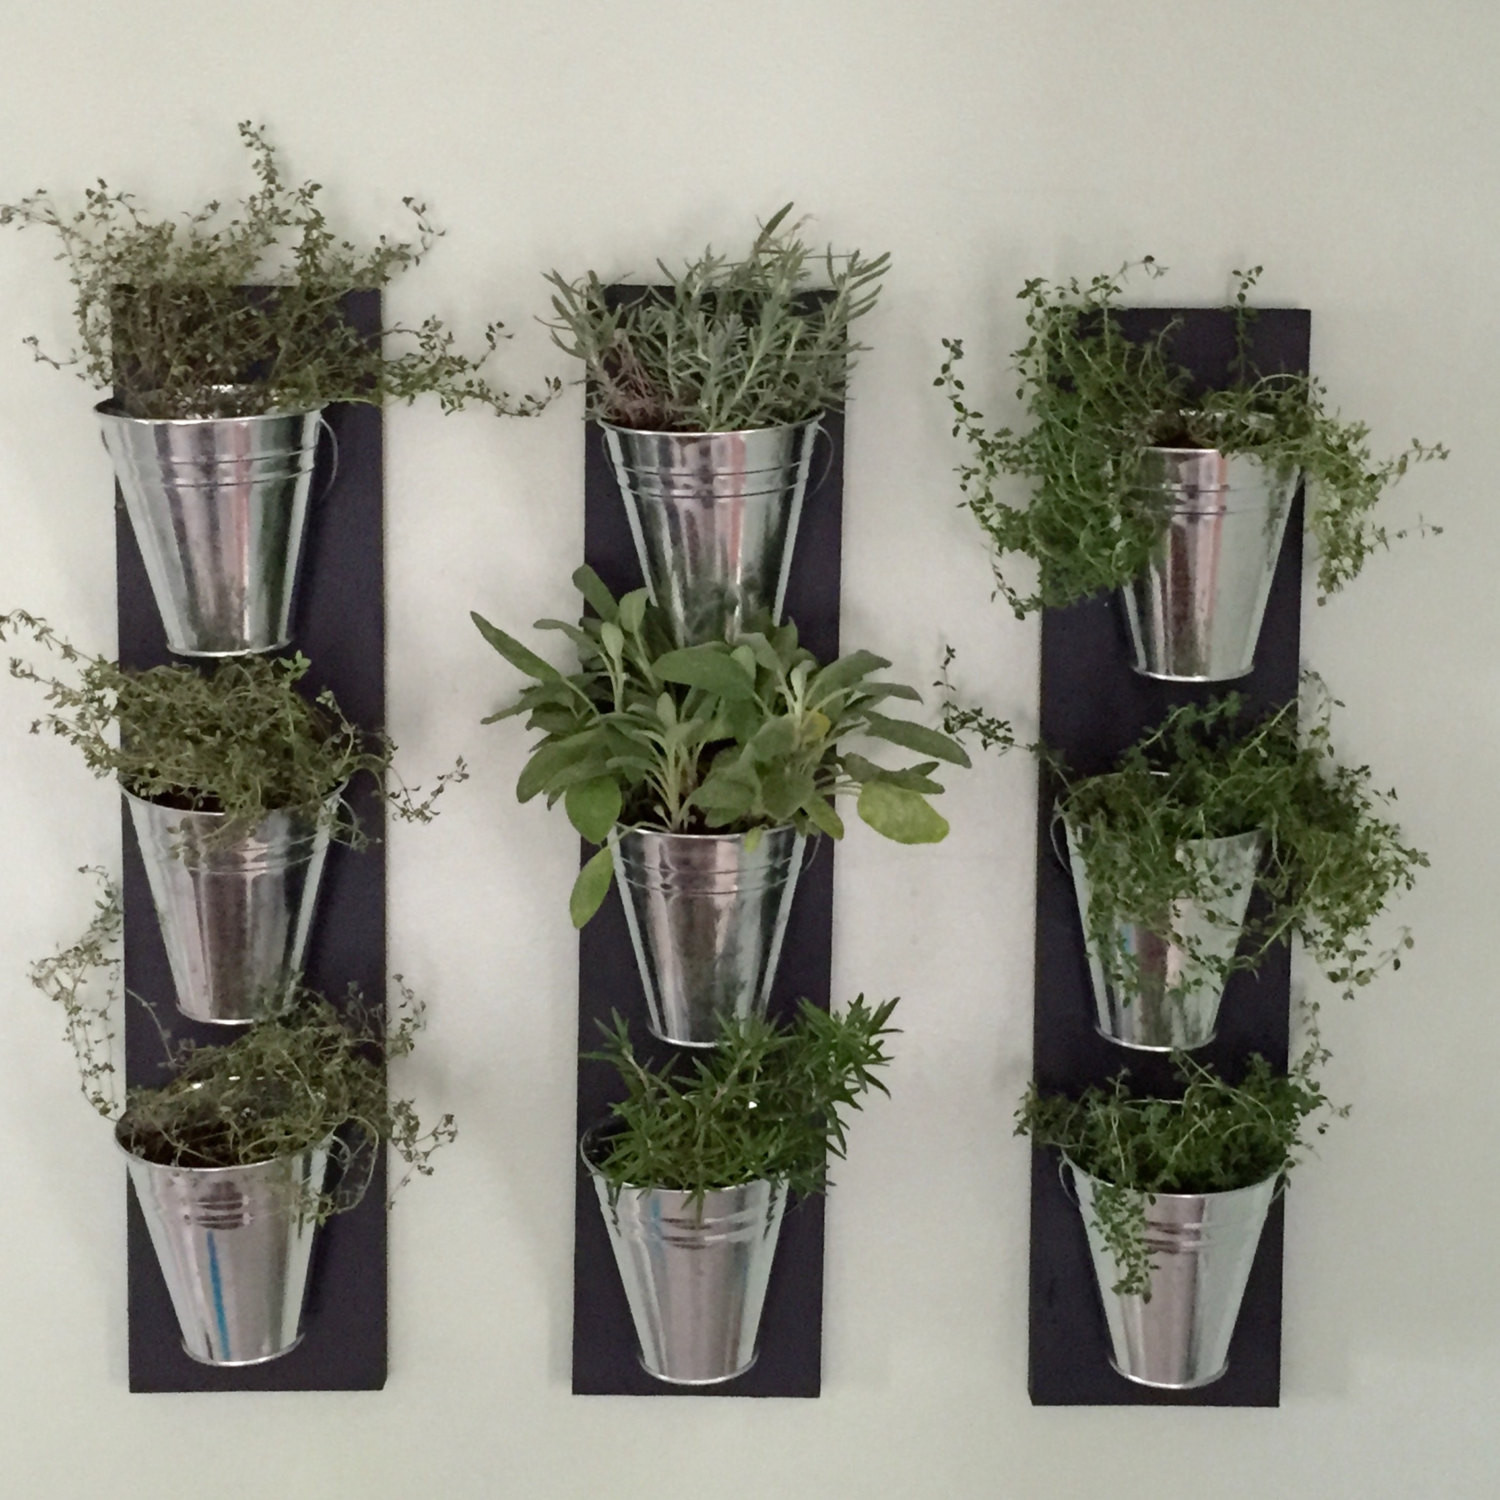 Best ideas about Wall Planters Indoor . Save or Pin Indoor Wall Planter by Home iship on Etsy Now.